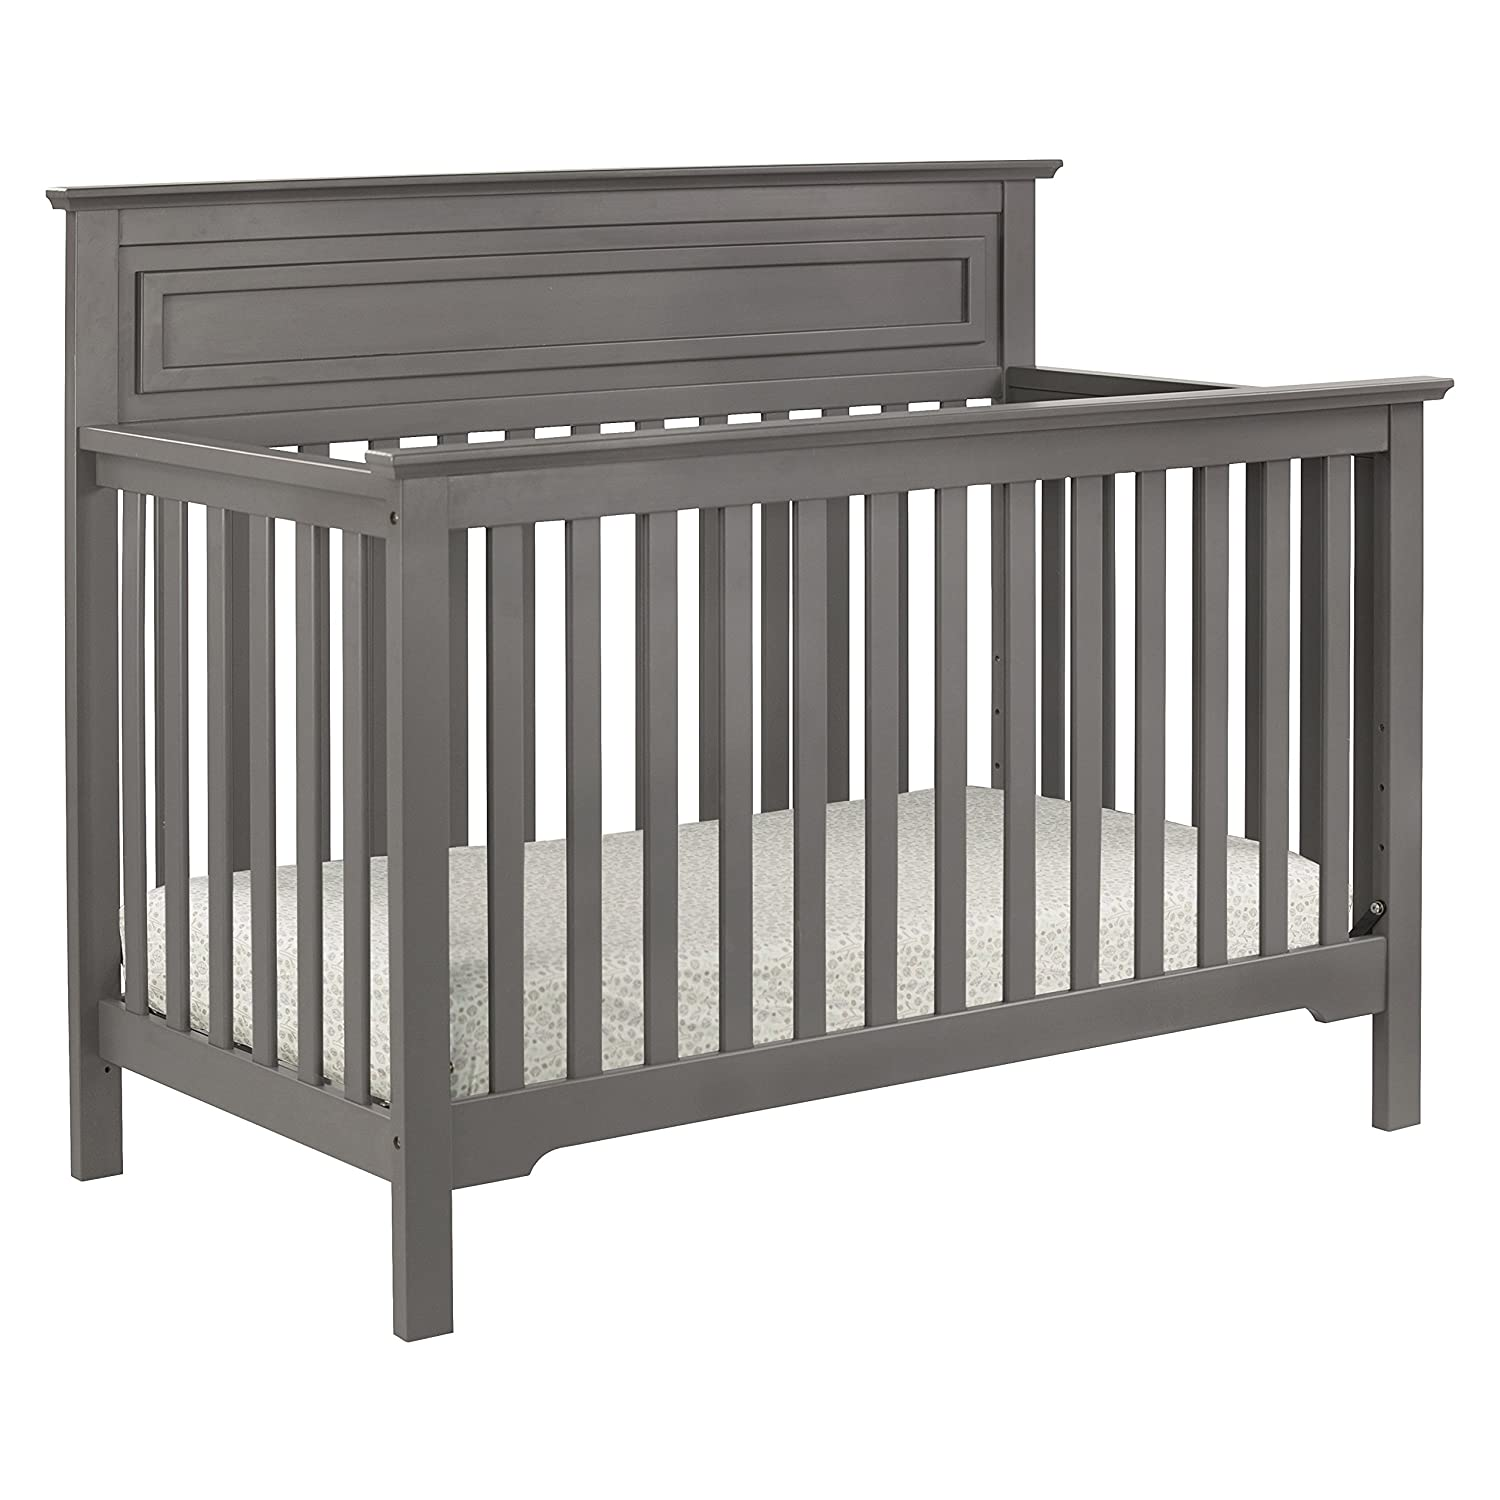 Amazon.com : DaVinci Autumn 4-in-1 Convertible Crib, Slate : Baby